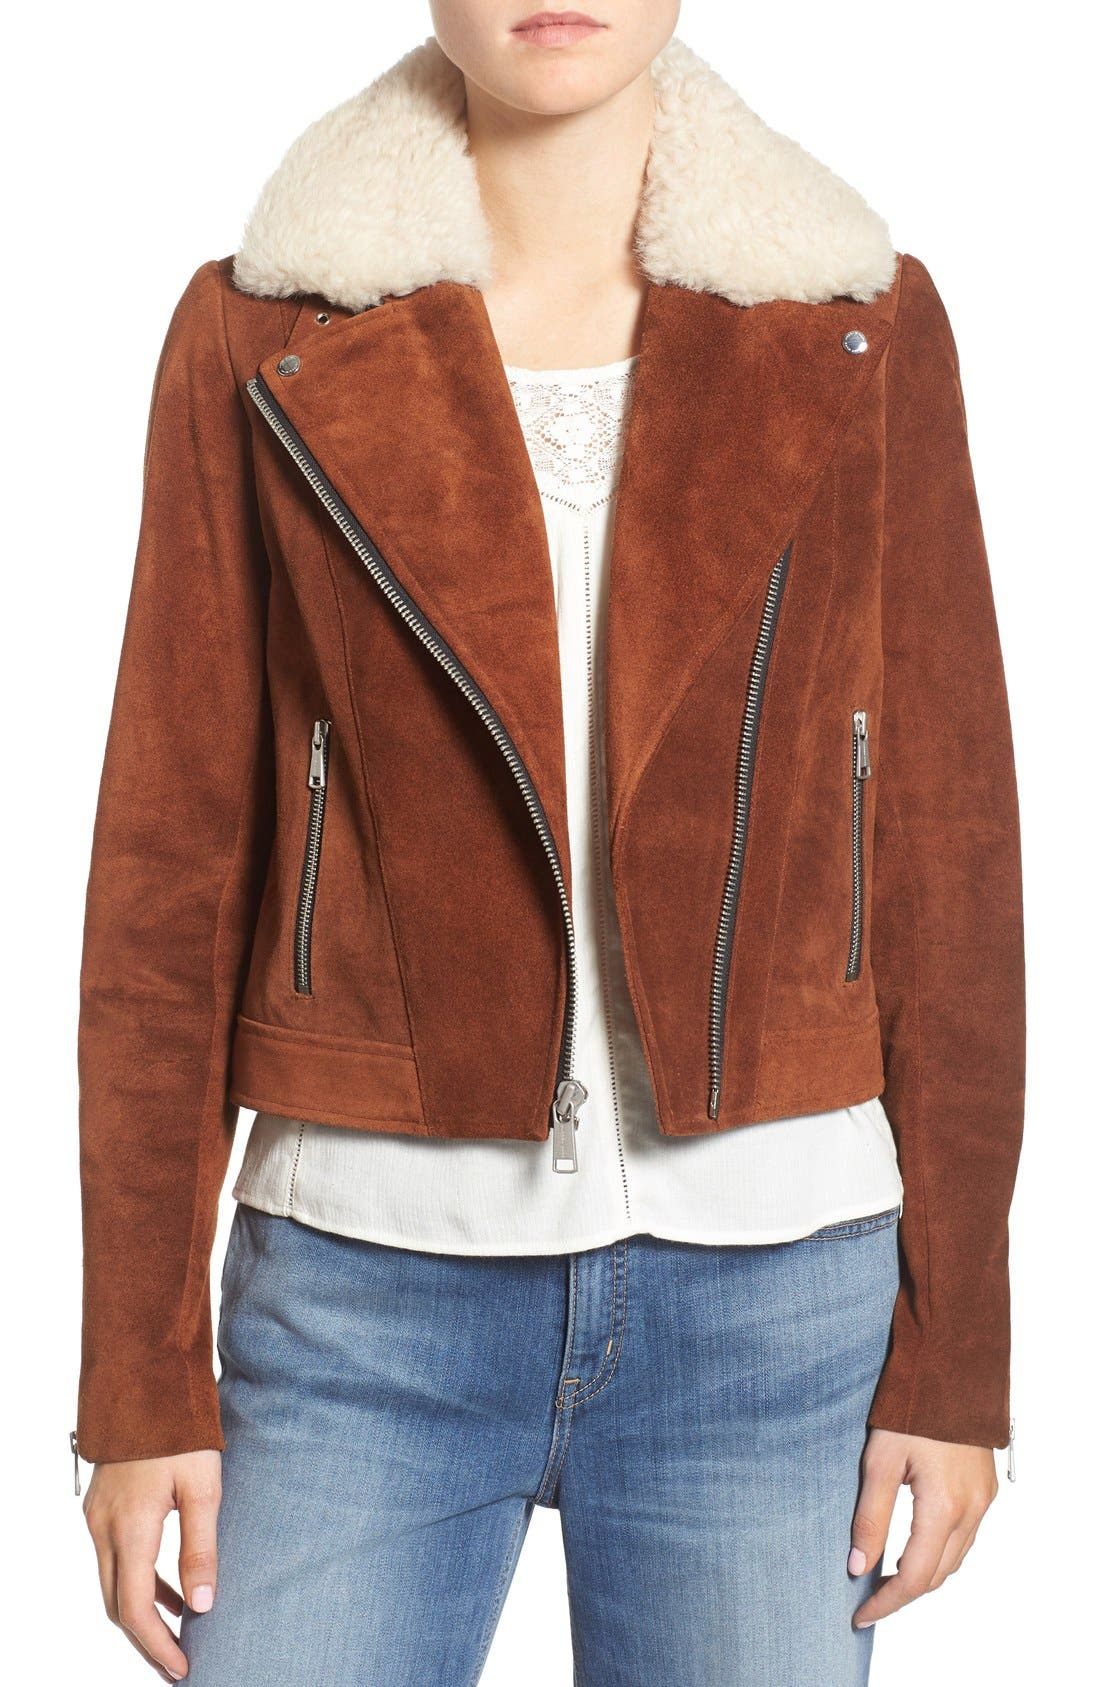 Main Image - Andrew Marc Suede Jacket with Genuine Shearling Collar